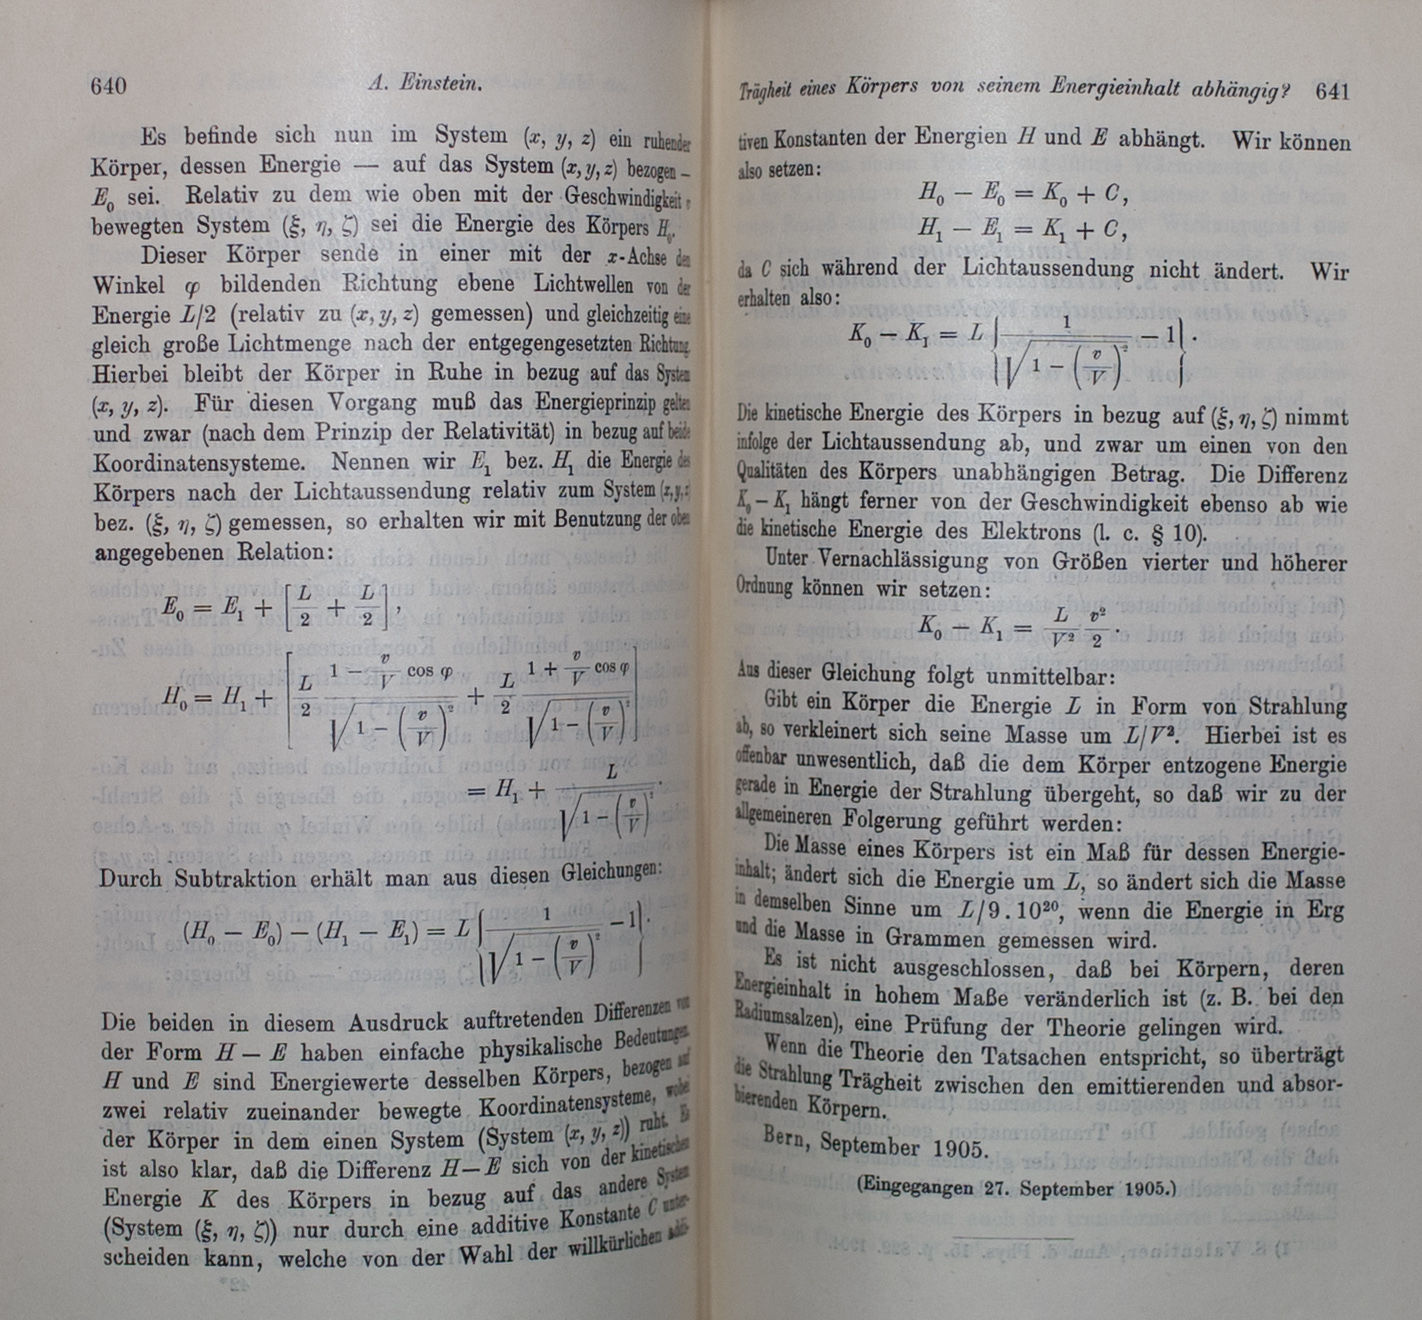 einsteins last essay An essay on his most recent efforts at further generalizing  general relativity and formulating a unified theory that would  incorporate electromagnetism and atomic phenomena.